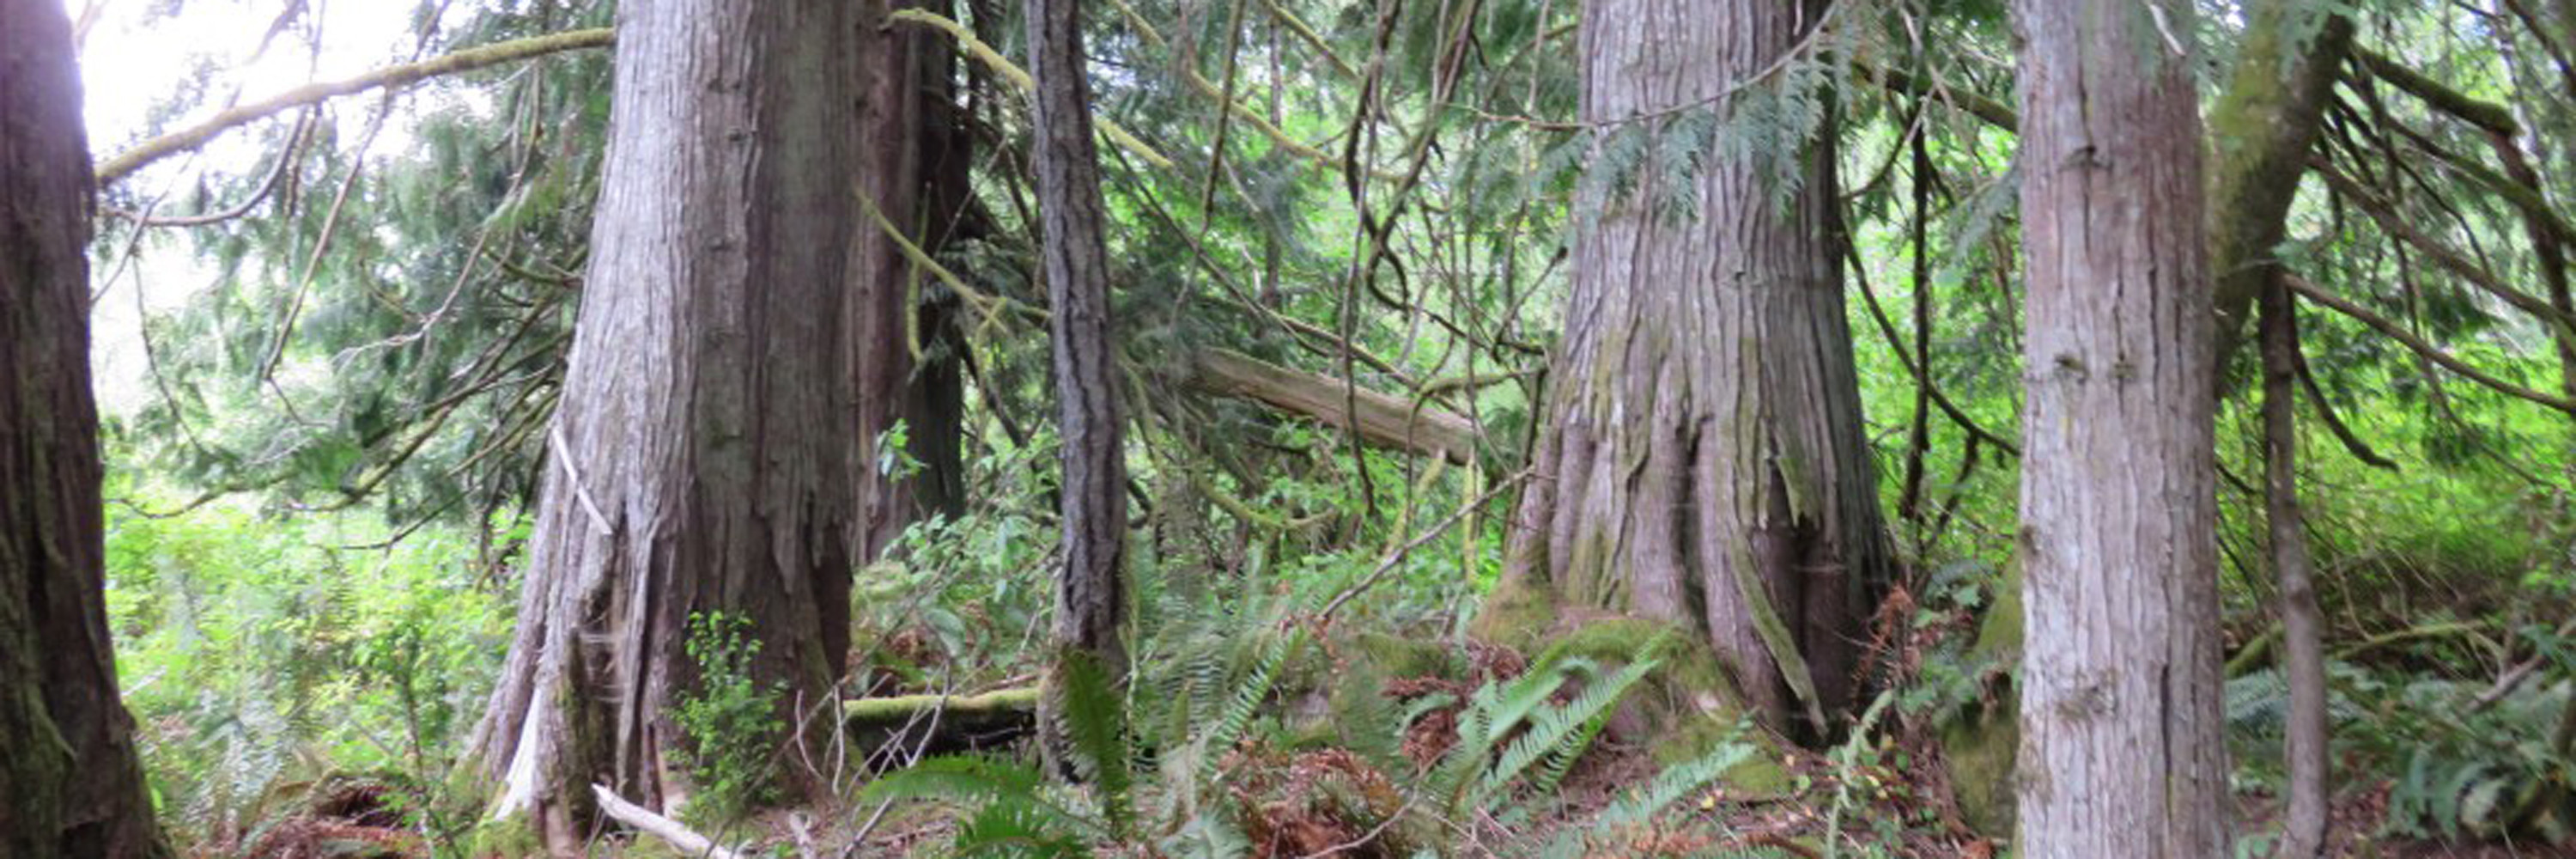 trees-img_2432 cropped